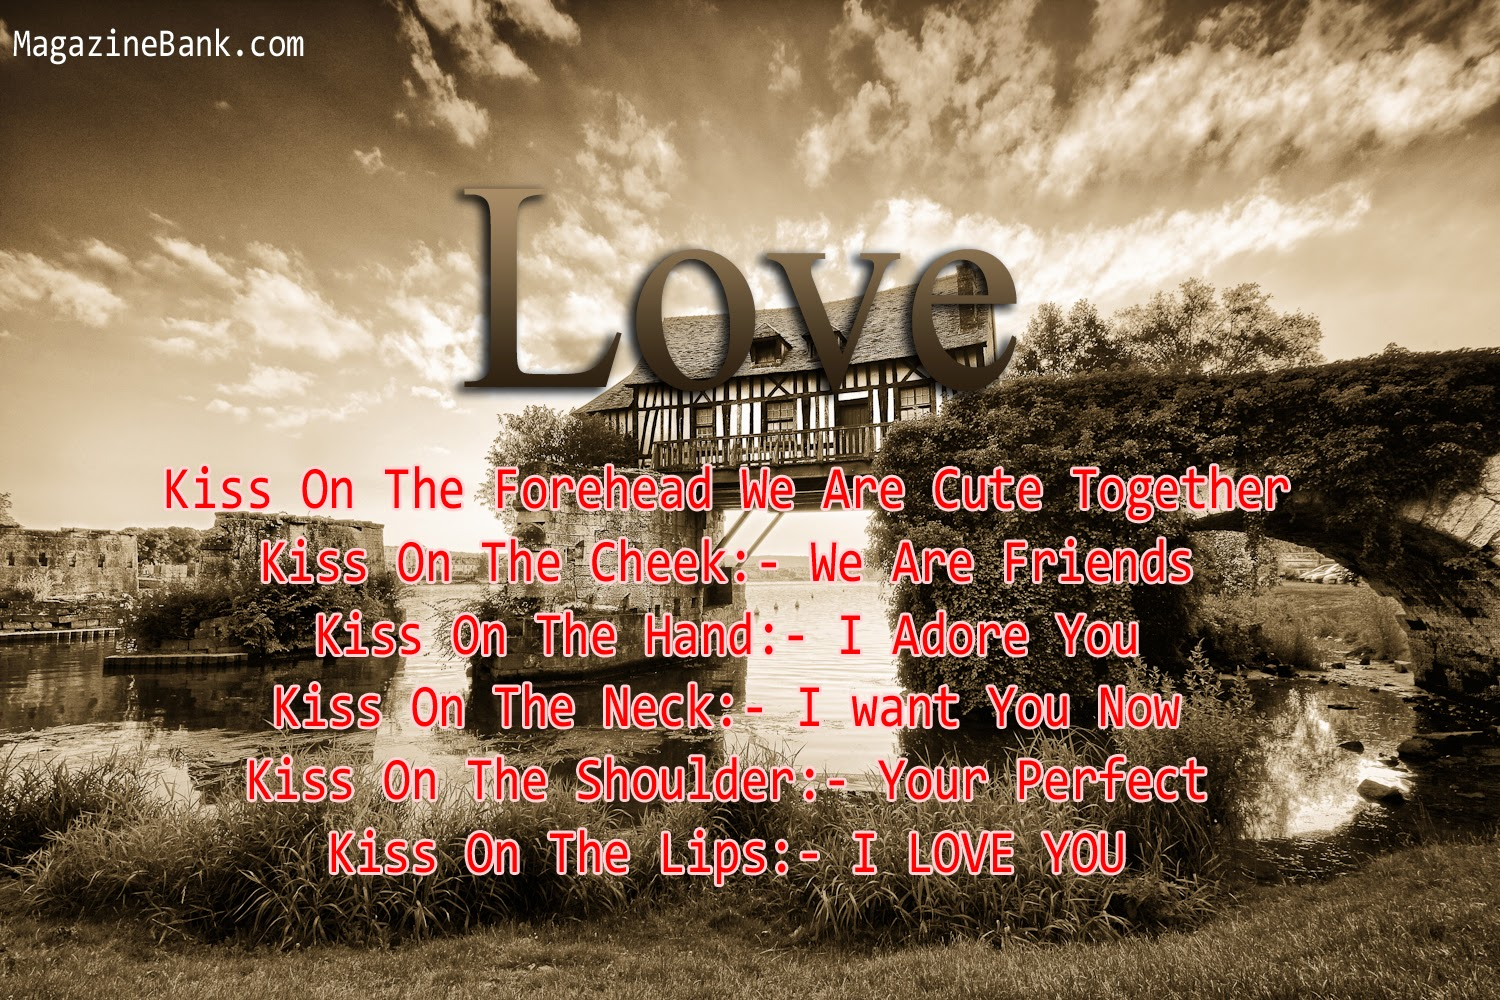 Sad Love Quotes English For Him: Sad Love Quotes For Her From The Heart. QuotesGram